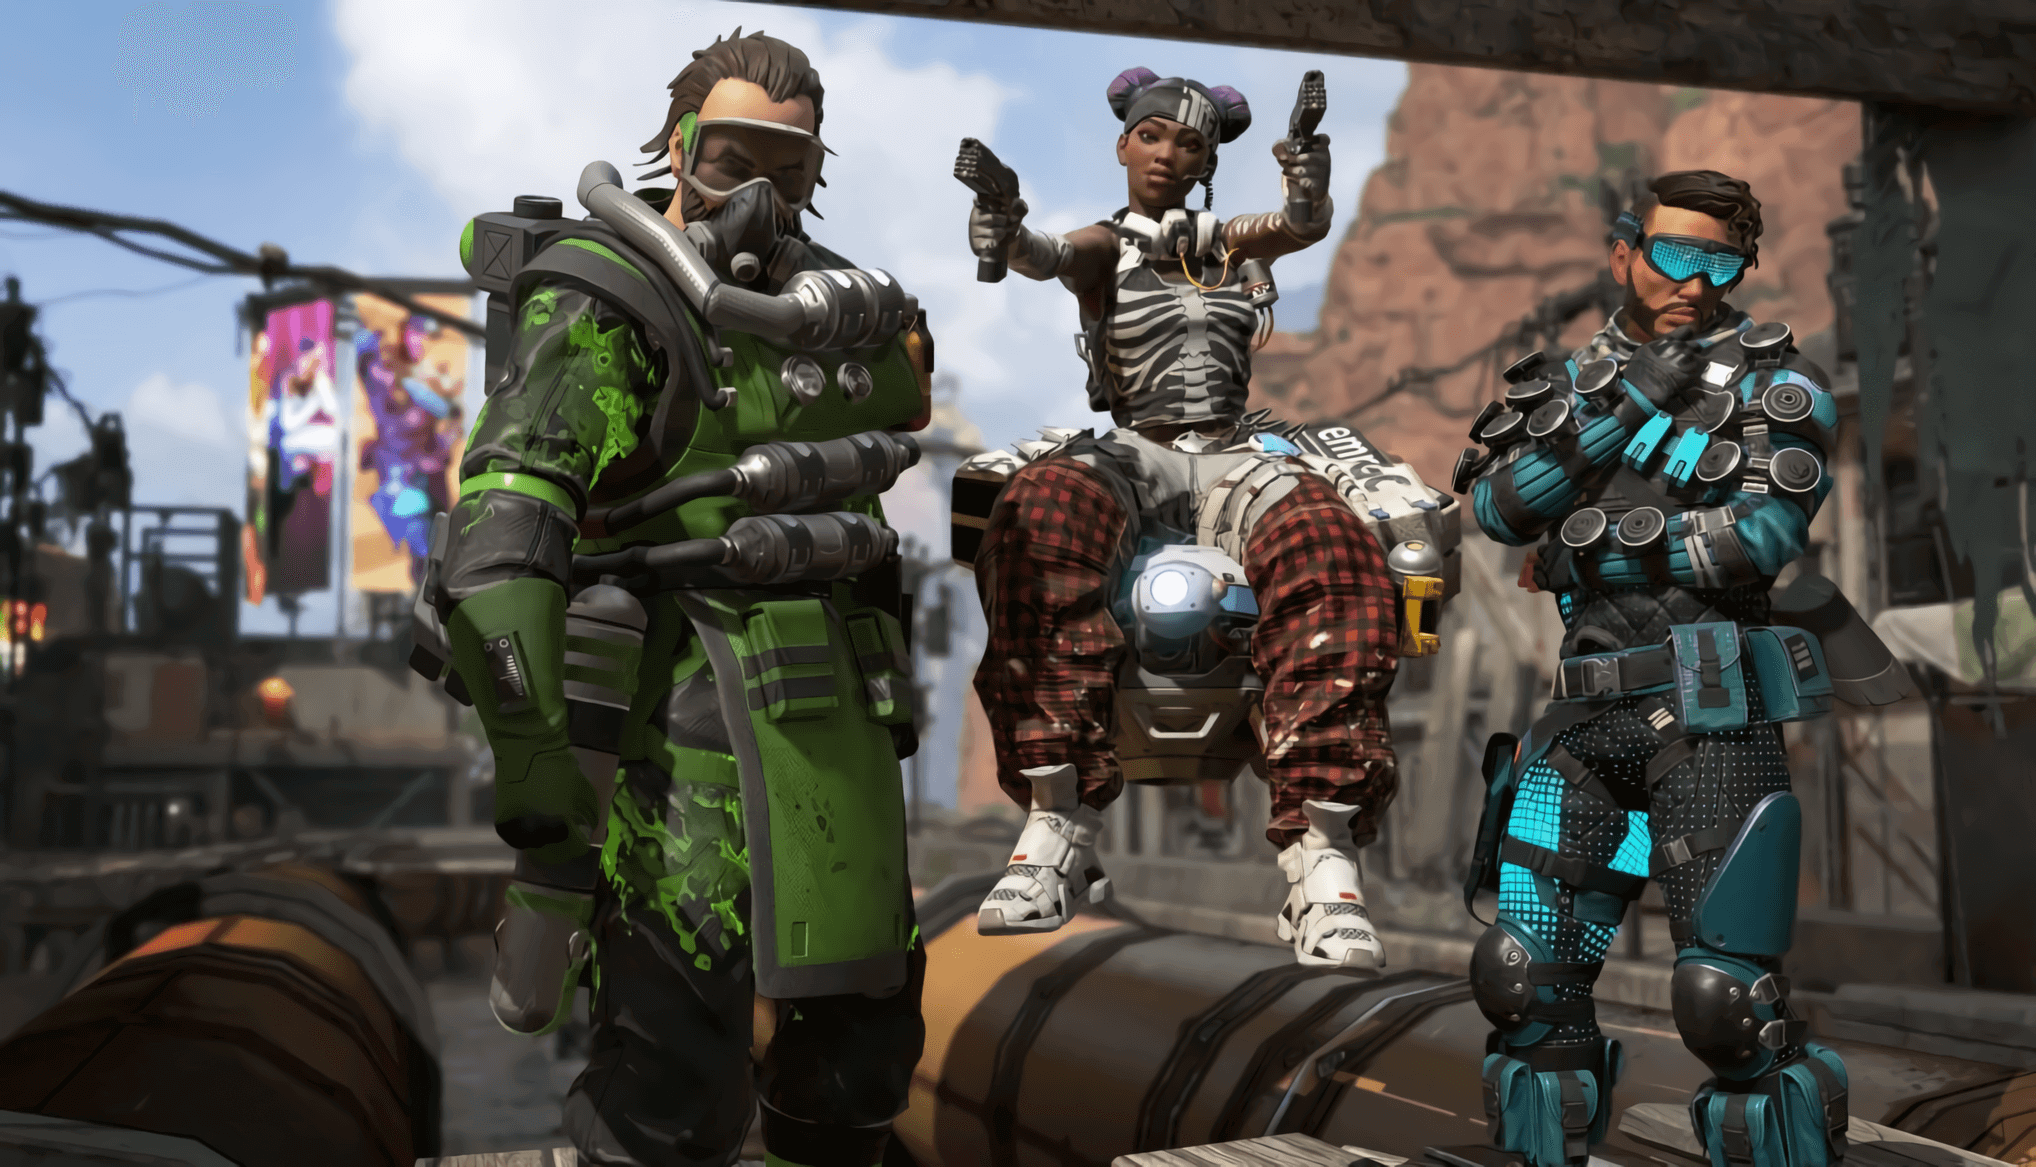 Apex Legends from EA Games crosses 10 million downloads within 72 hours